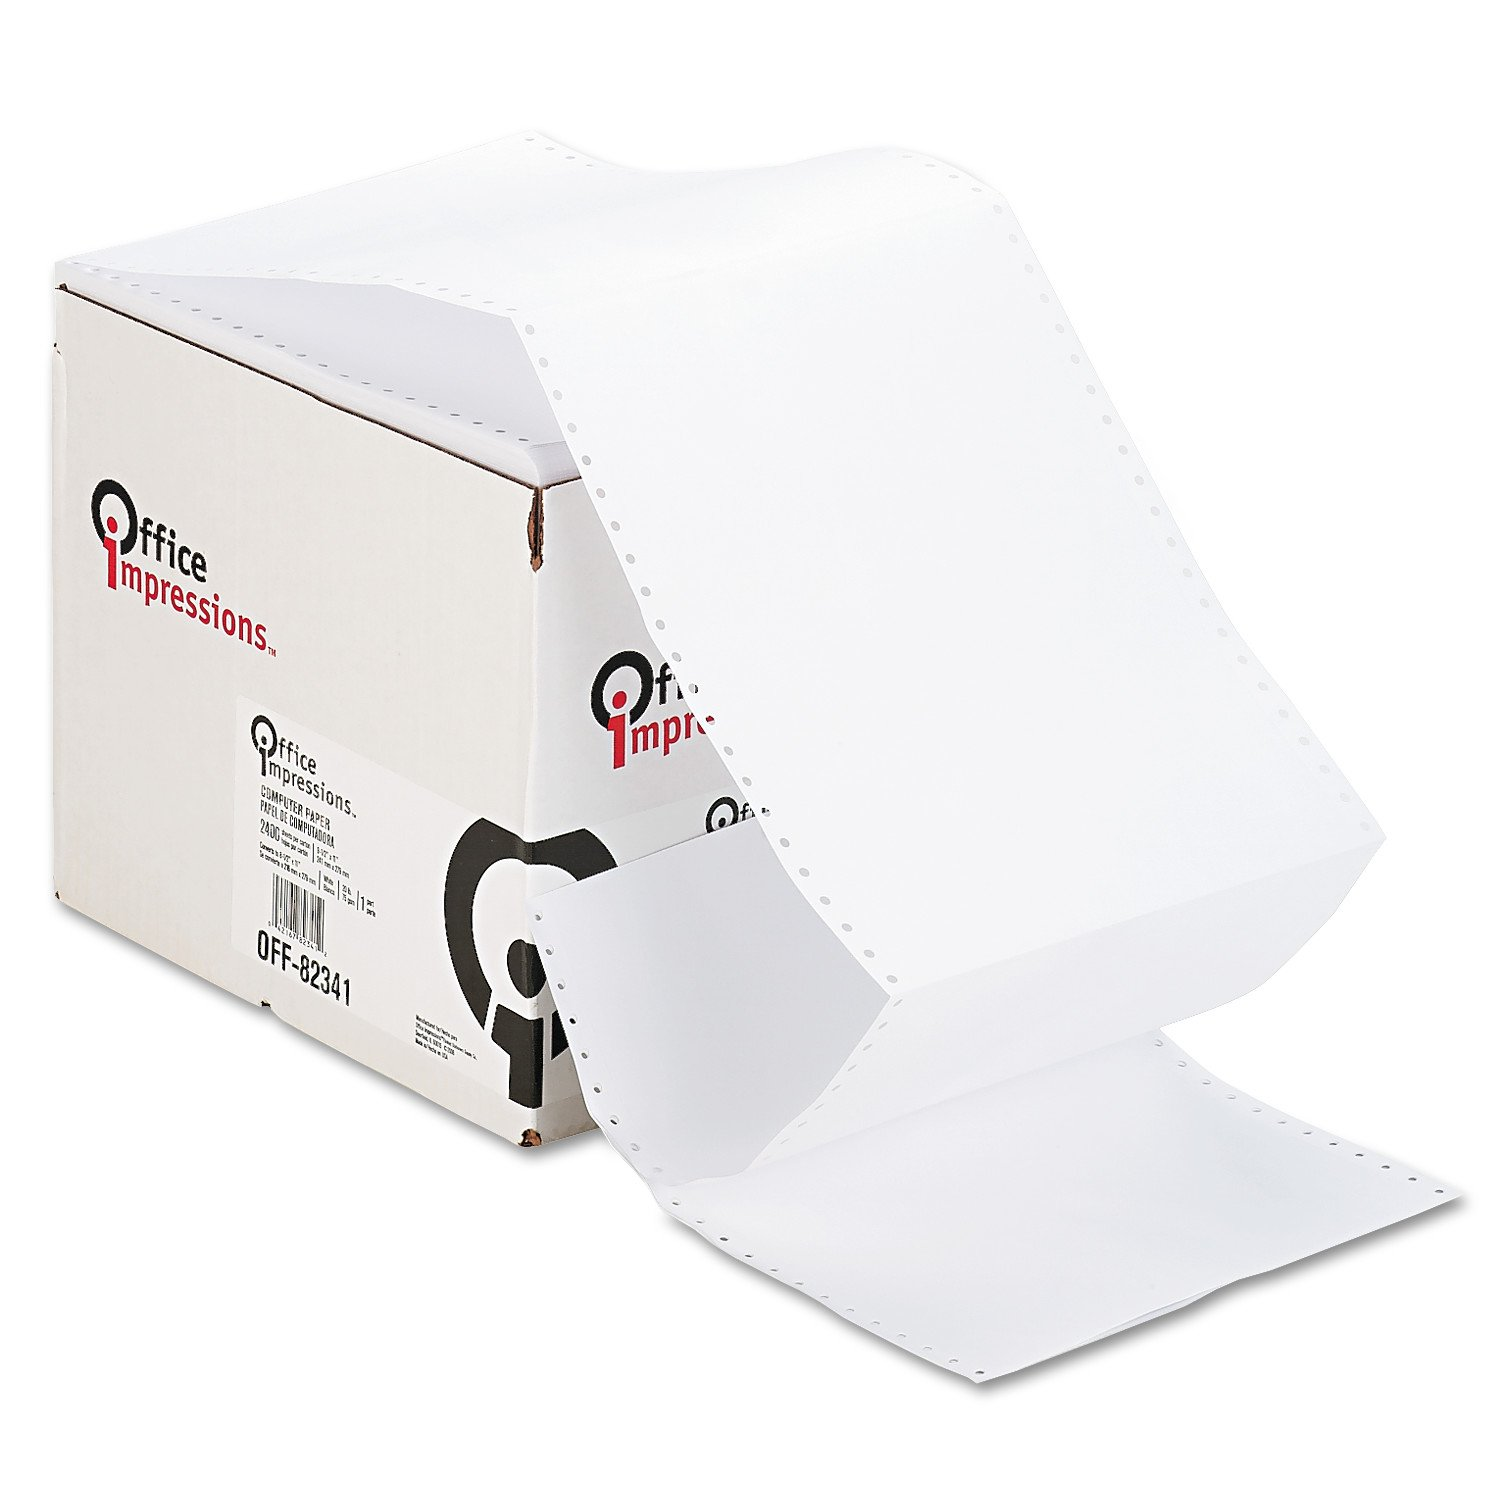 Office Impressions Computer Paper, 20lb, 9-1/2 x 11, Letter Trim Perforation, White, 2400 Sheets